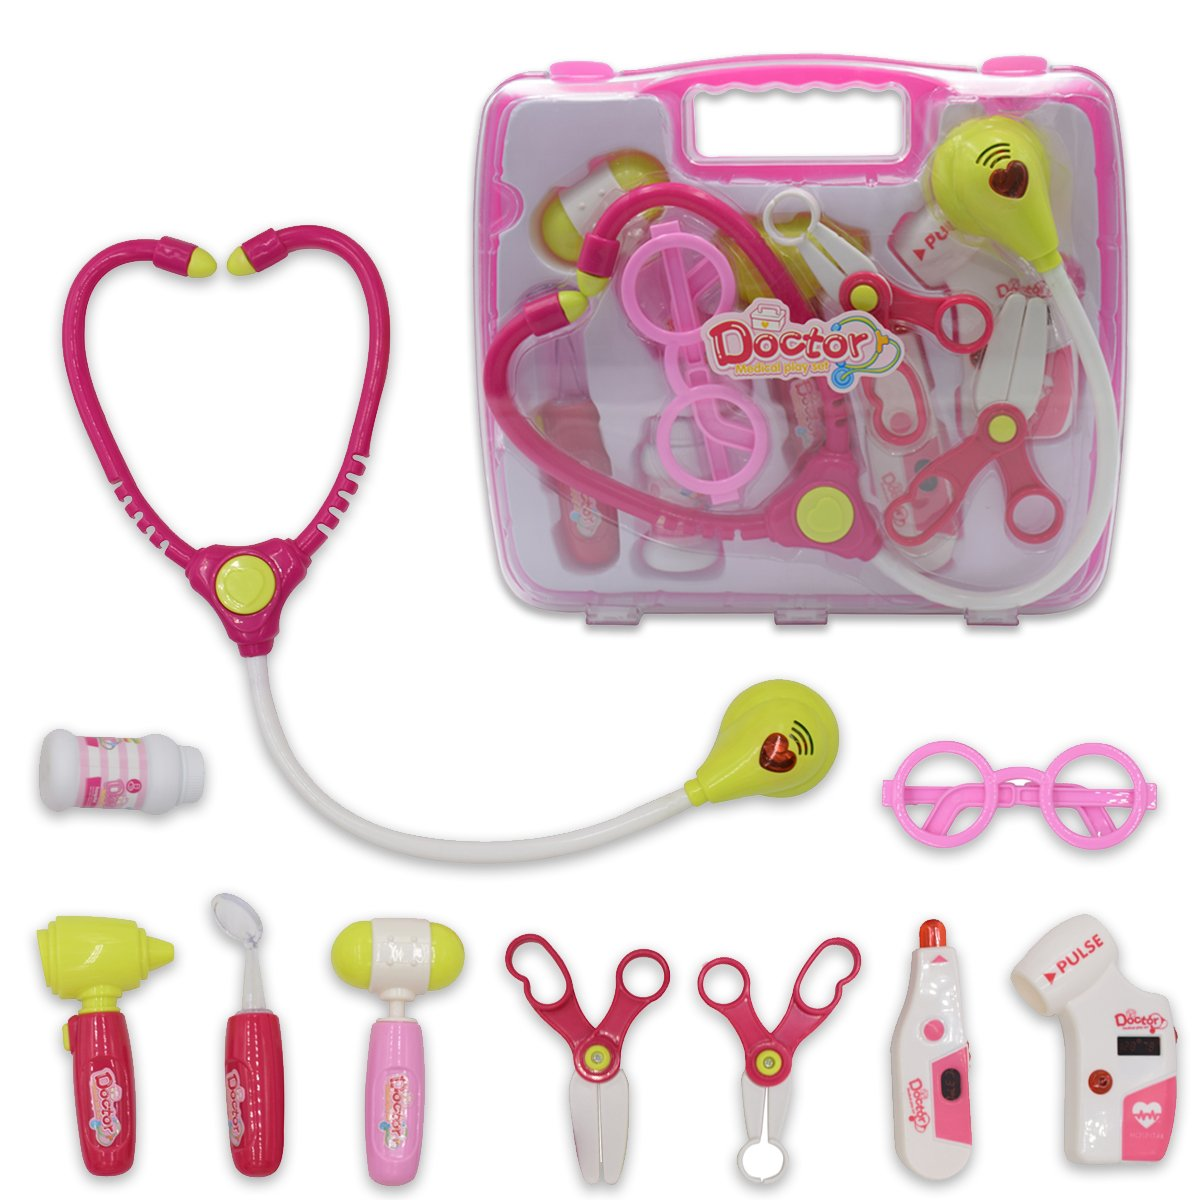 Seprovider Role Pretend and Play Toy Doctor Playset for Kids Children